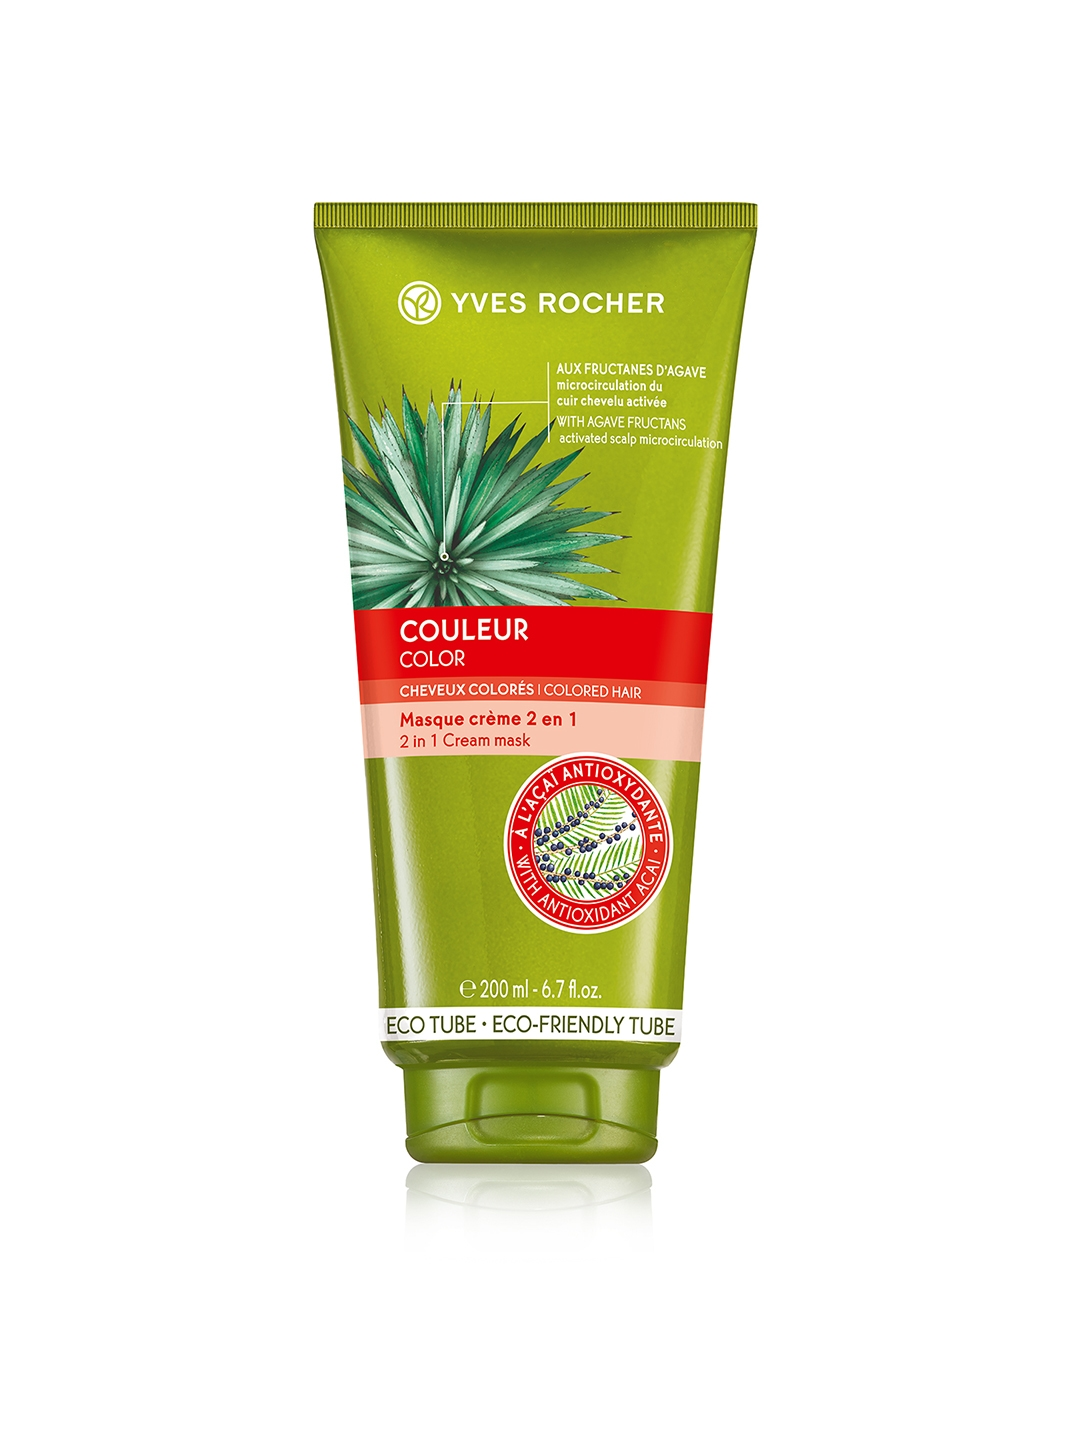 YVES ROCHER Colour 2 in 1 Sustainable Hair Cream Mask 200 ml